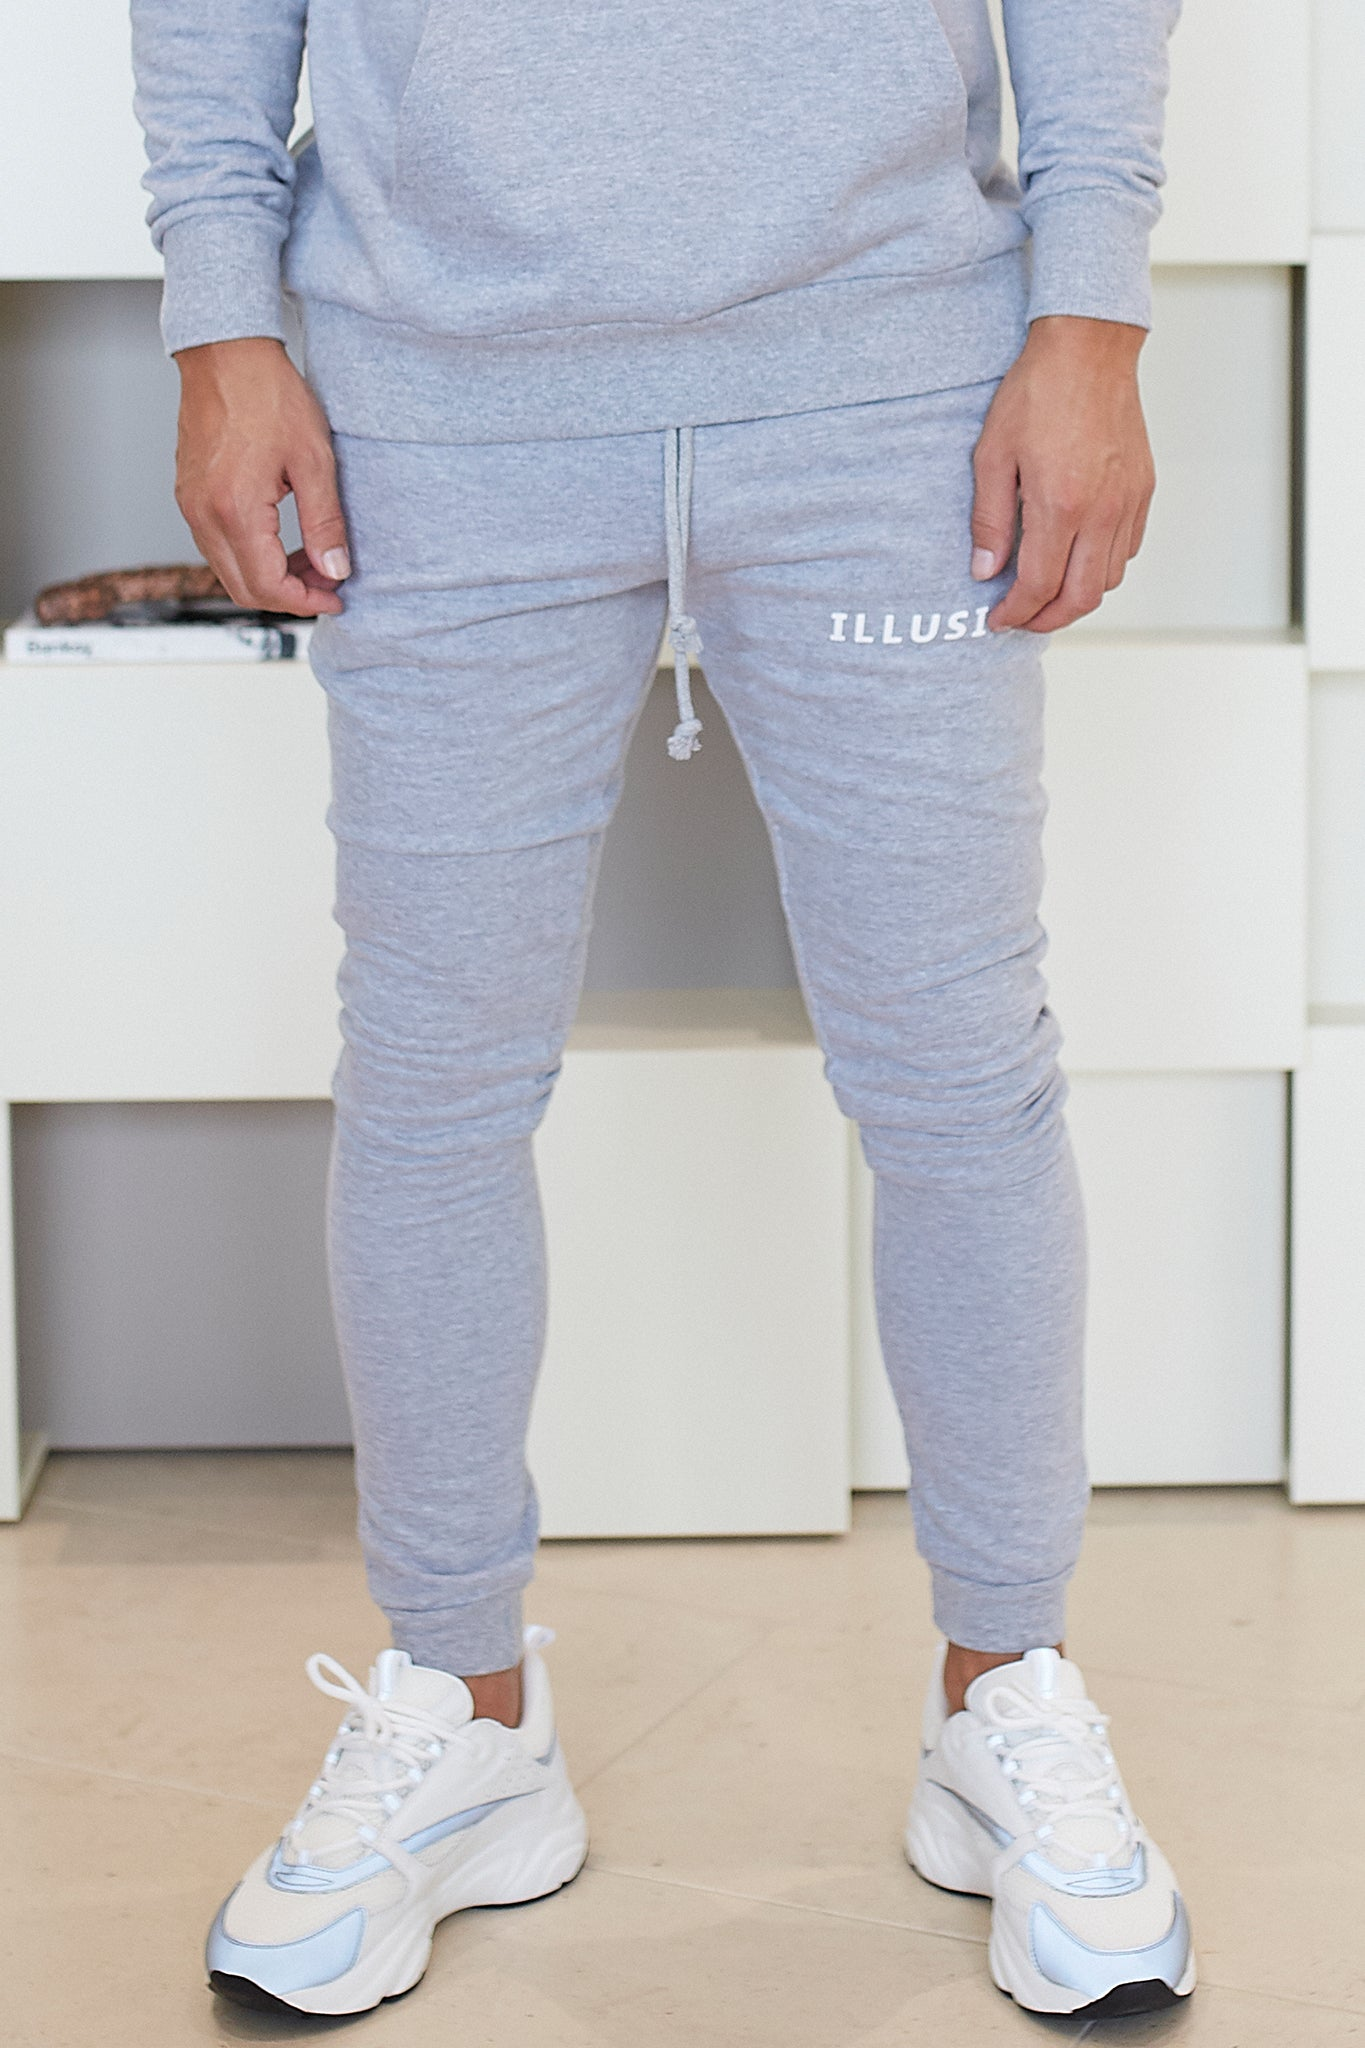 GREY ESSENTIALS JOGGERS - Illusion Attire